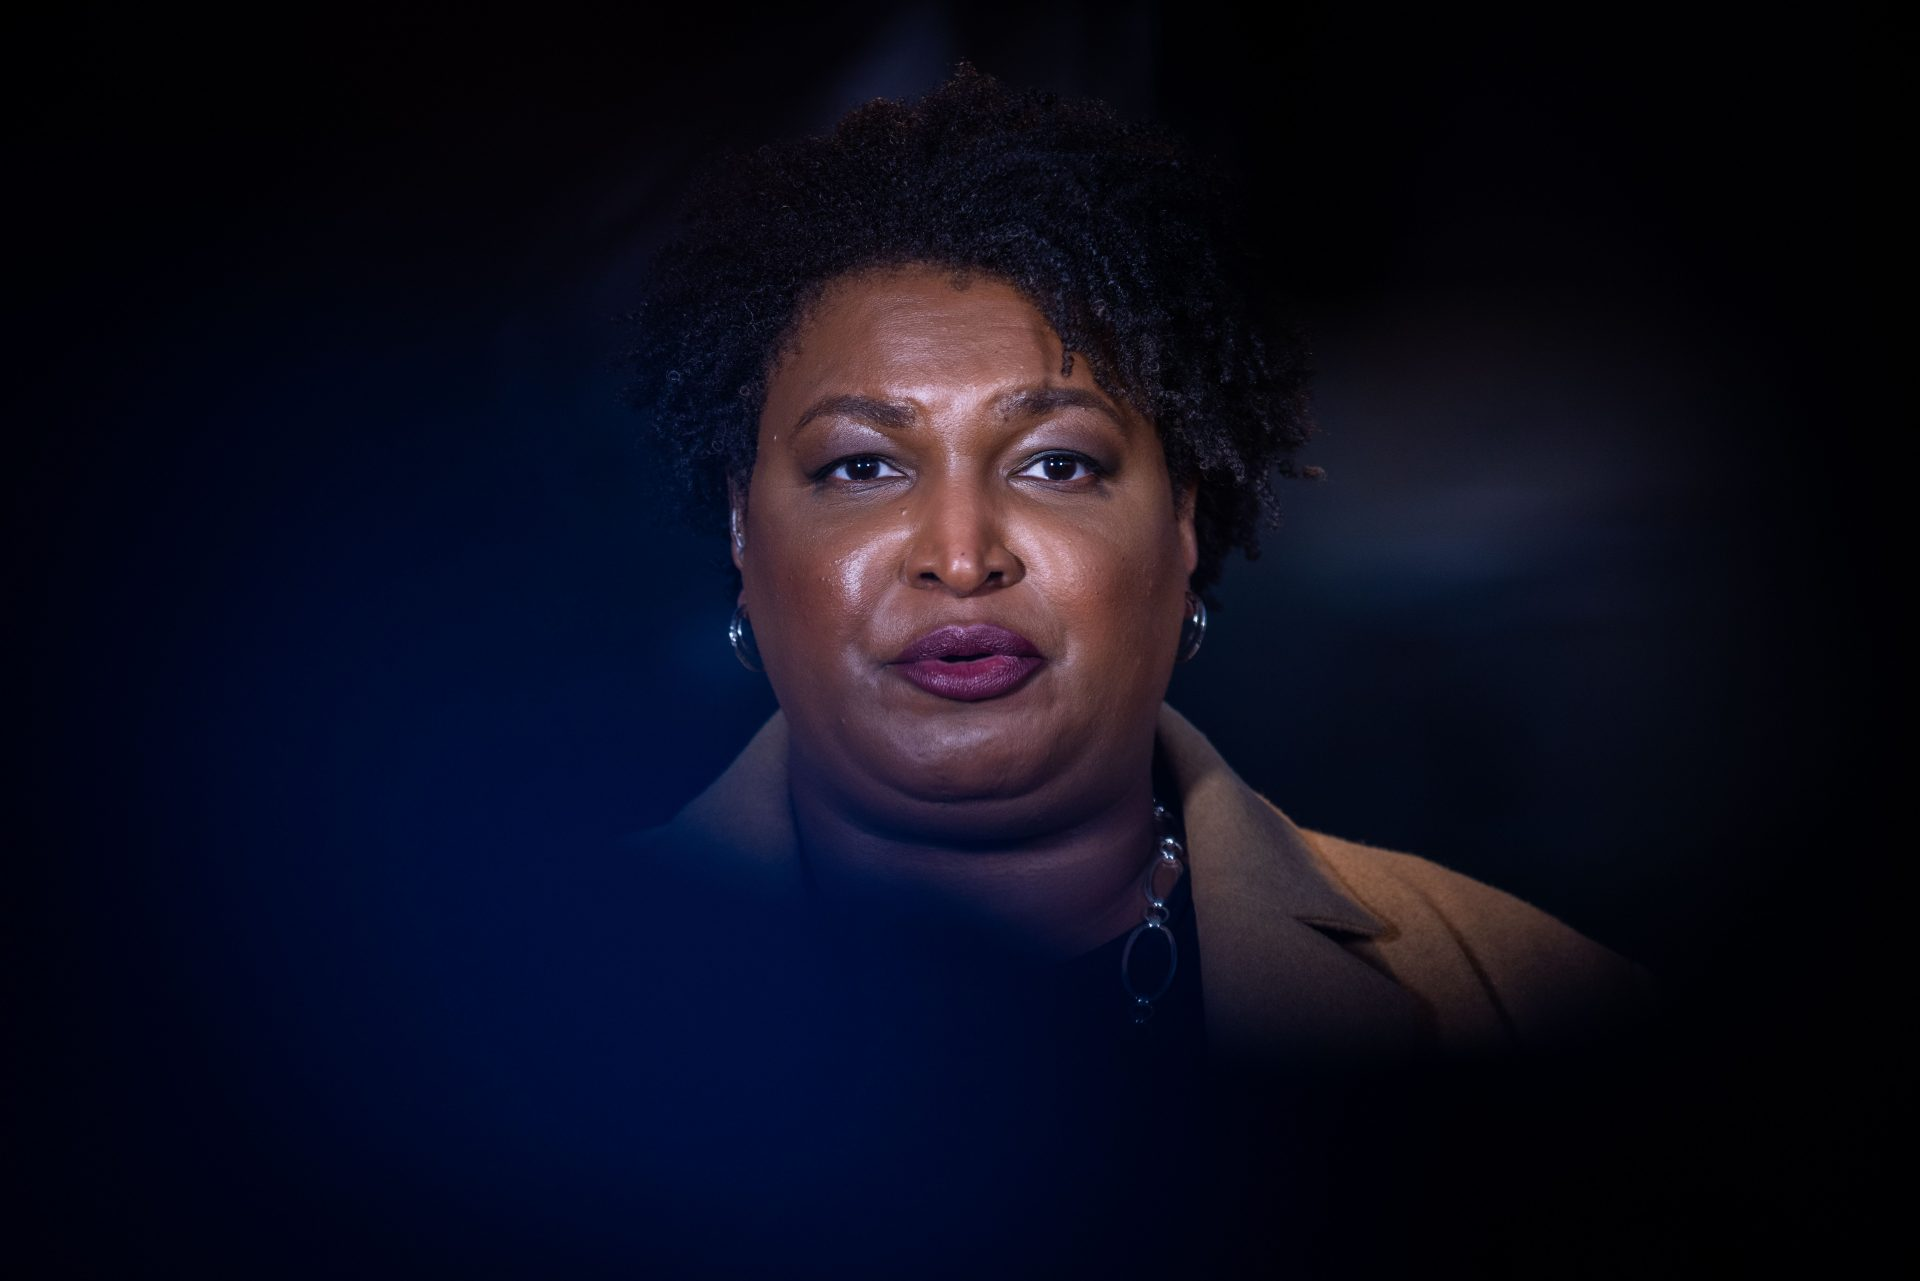 Mandatory Credit: Photo by Nathan Posner/Shutterstock (11684938ah)Former Gubernatorial candidate Stacey Abrams gives interviews to local media and greets supporters on Election day in Atlanta, GeorgiaStacey Abrams election day interview, Atlanta, Georgia, USA - 05 Jan 2021.